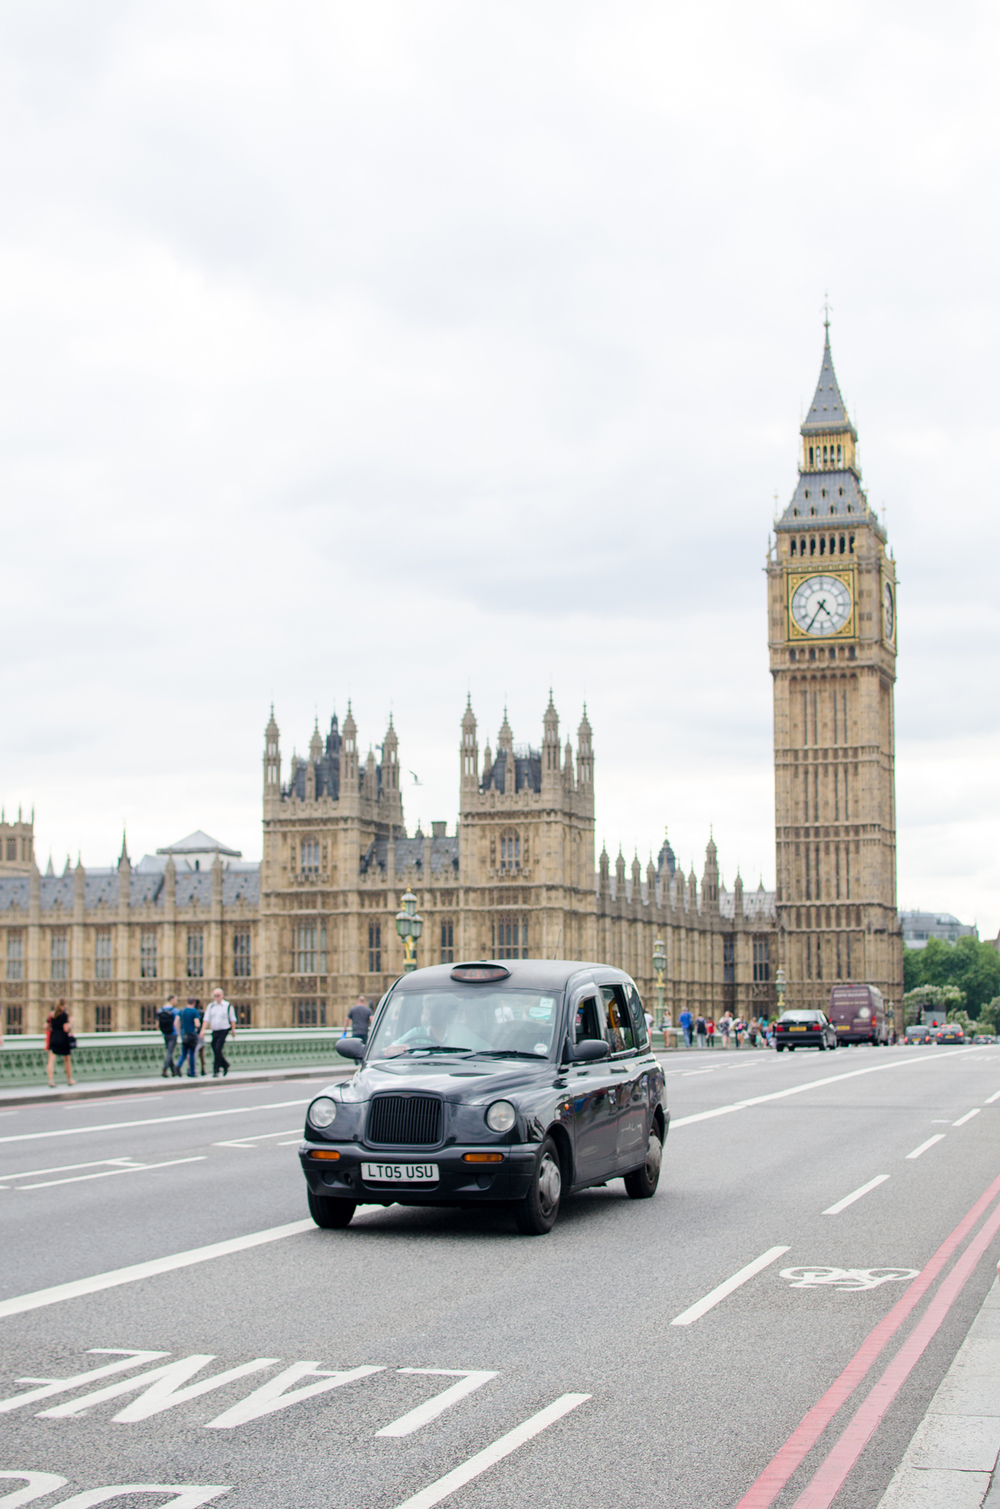 London_Travel_Lifestyle_Photographer_Big_Ben_Black Taxi.jpg